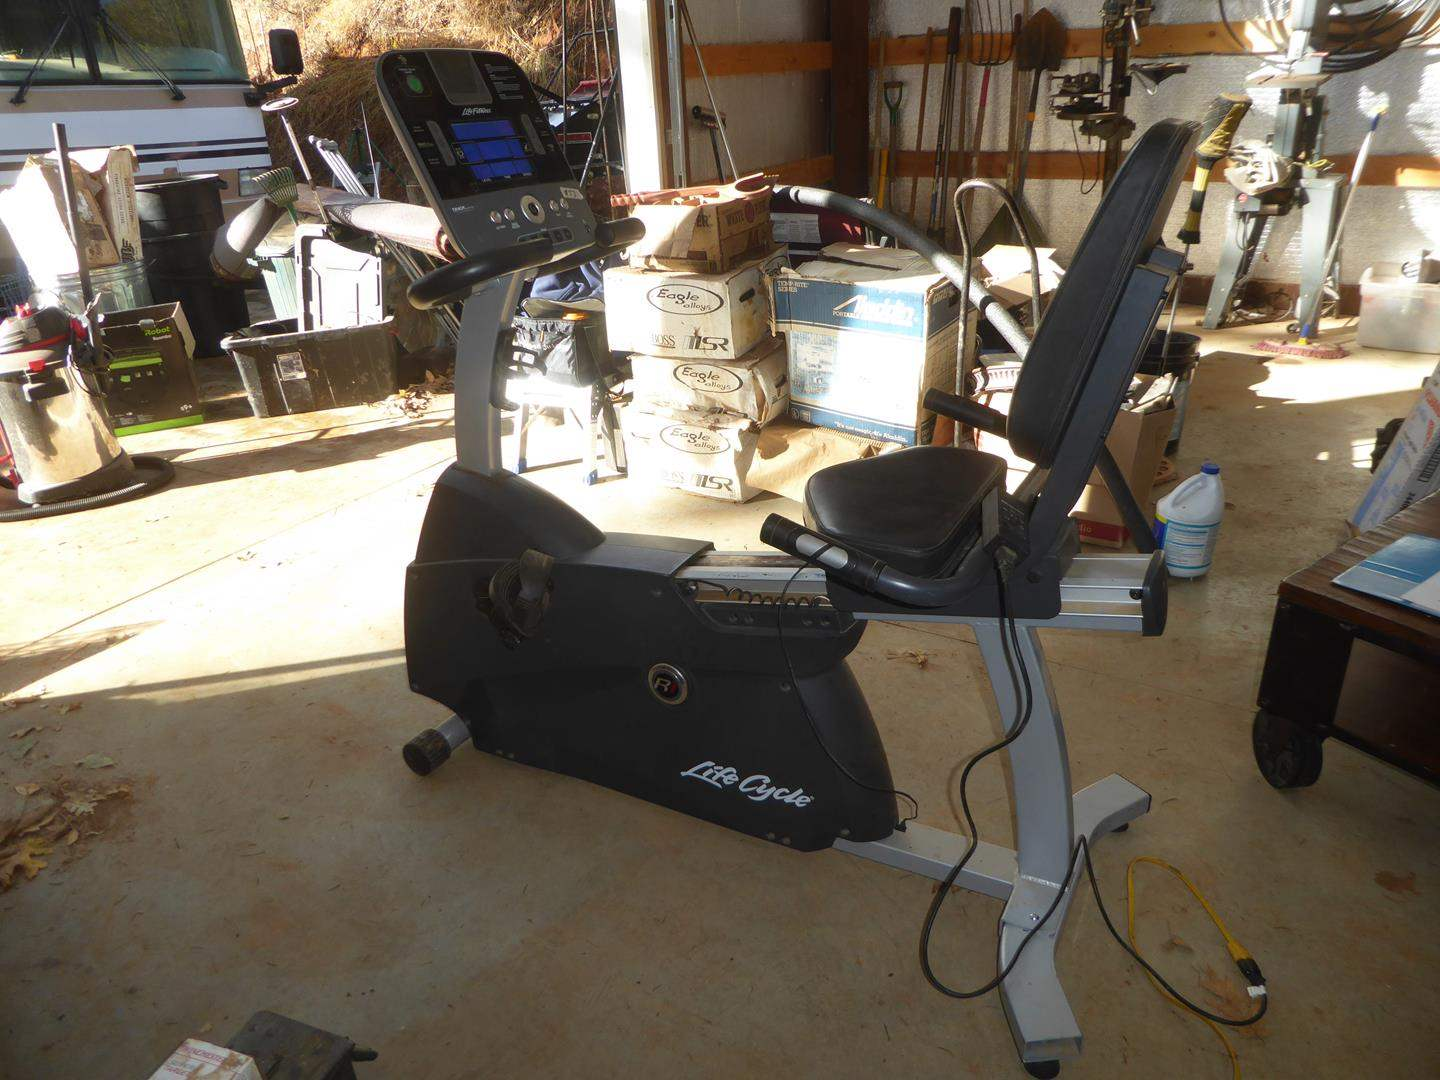 Lot # 53 - Life Cycle Track Console Exercise Bike (main image)